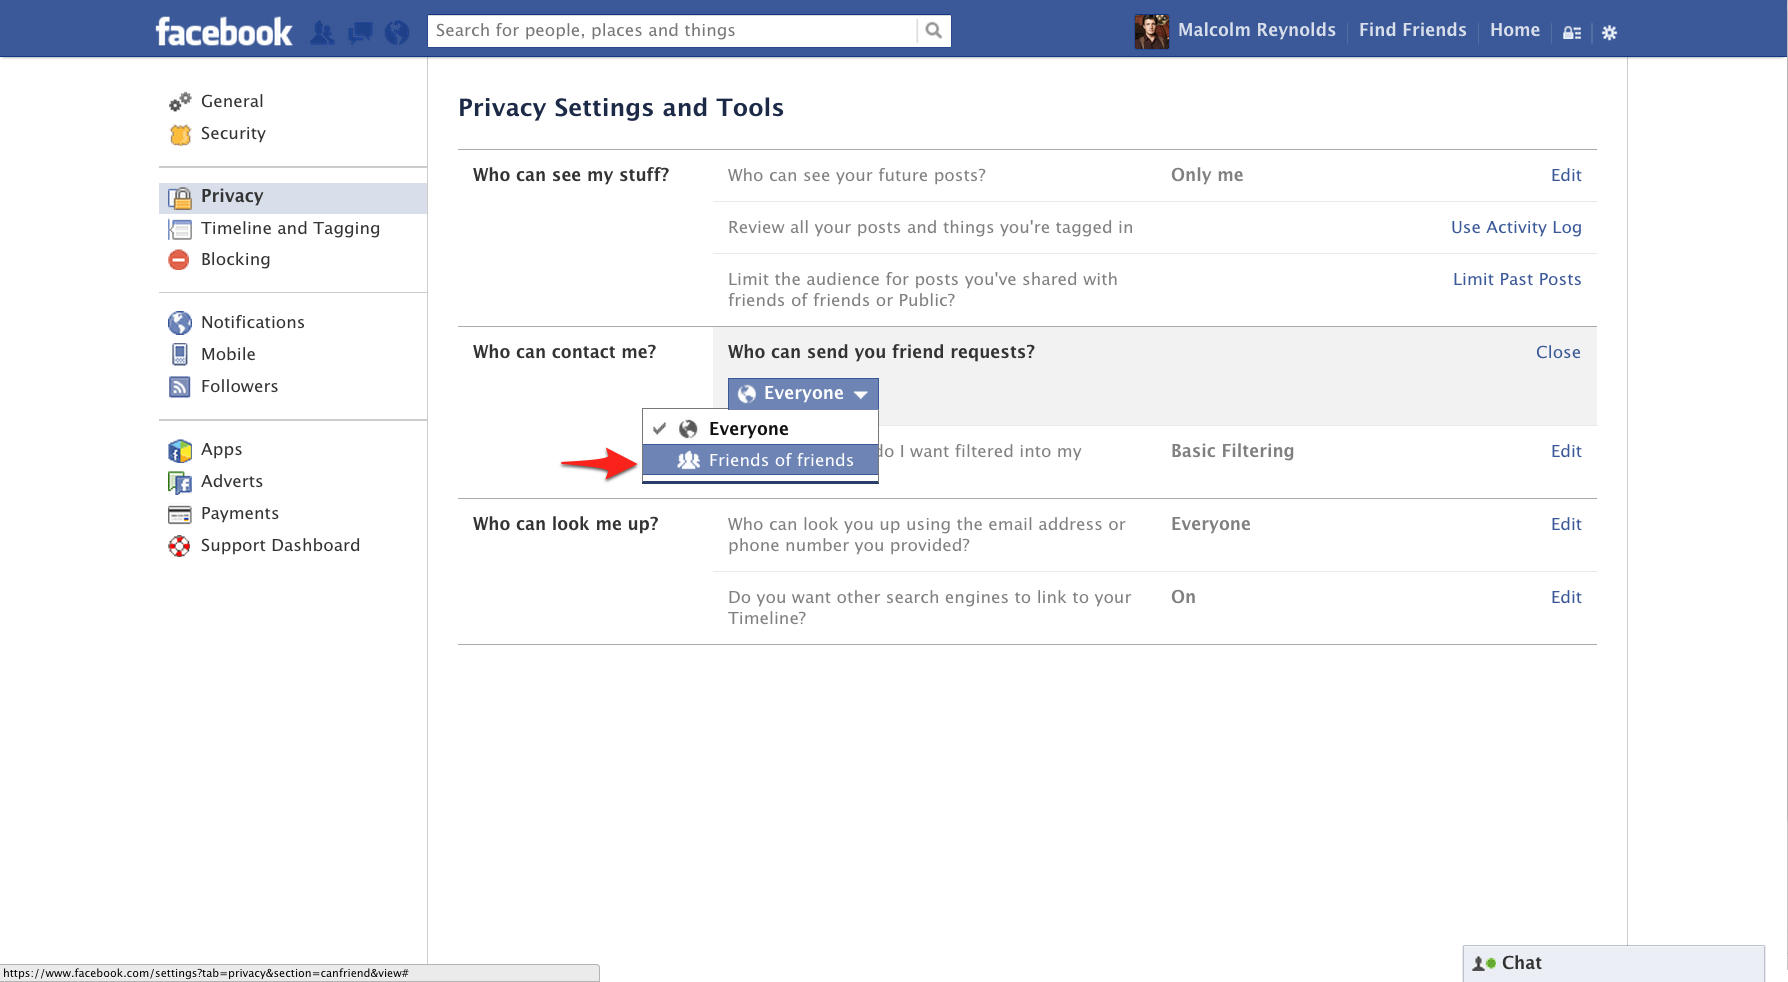 how to see sent friend requests on facebook android